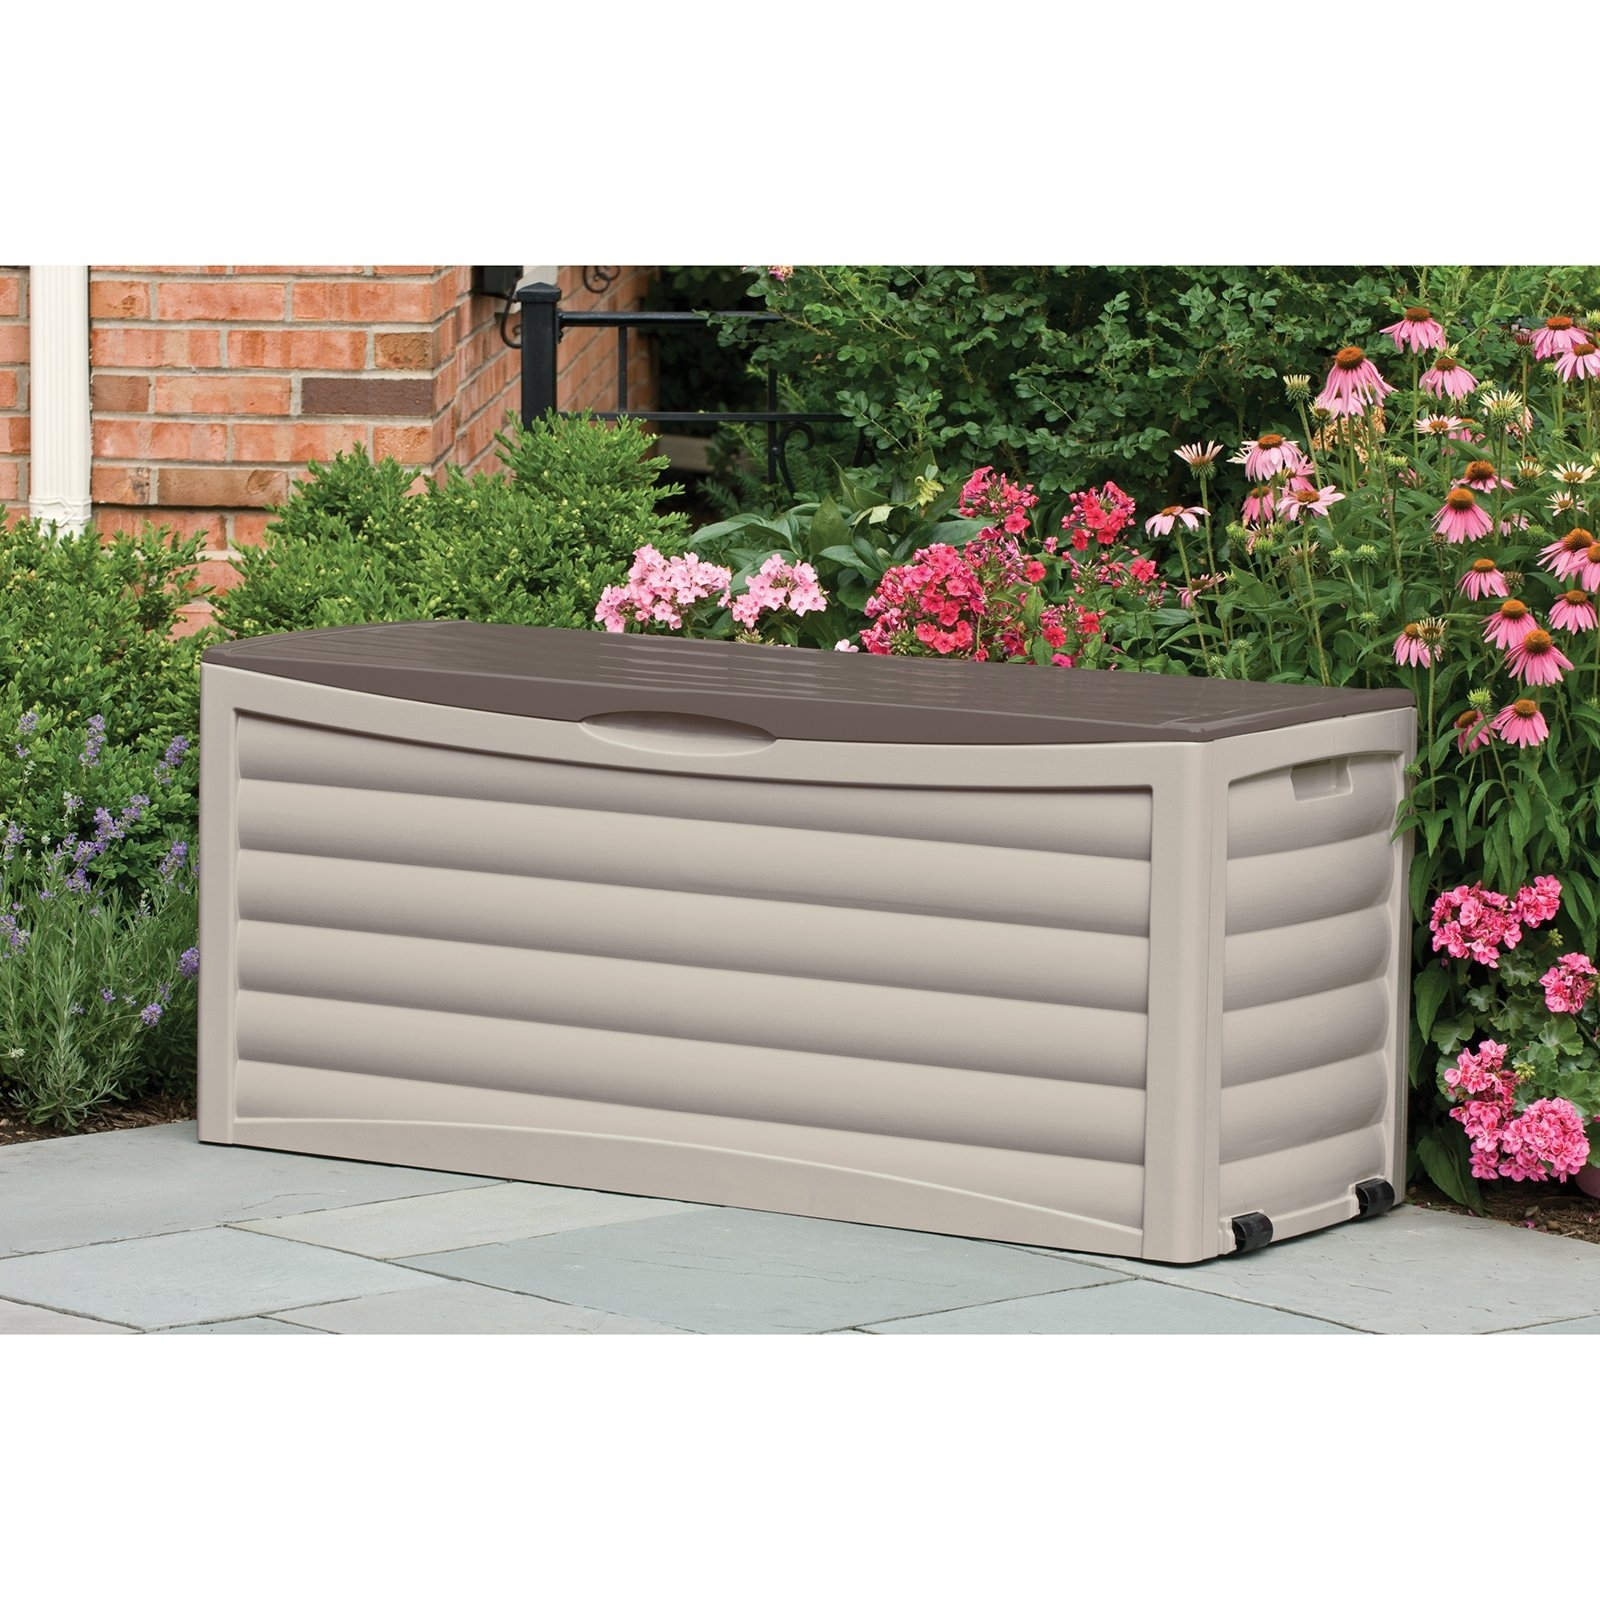 Image of: Keter Brightwood Resin 120 Gallon Outdoor Storage Deck Box Hayneedle Pertaining To Storage For Outdoor Cushions Store Storage For Outdoor Cushions